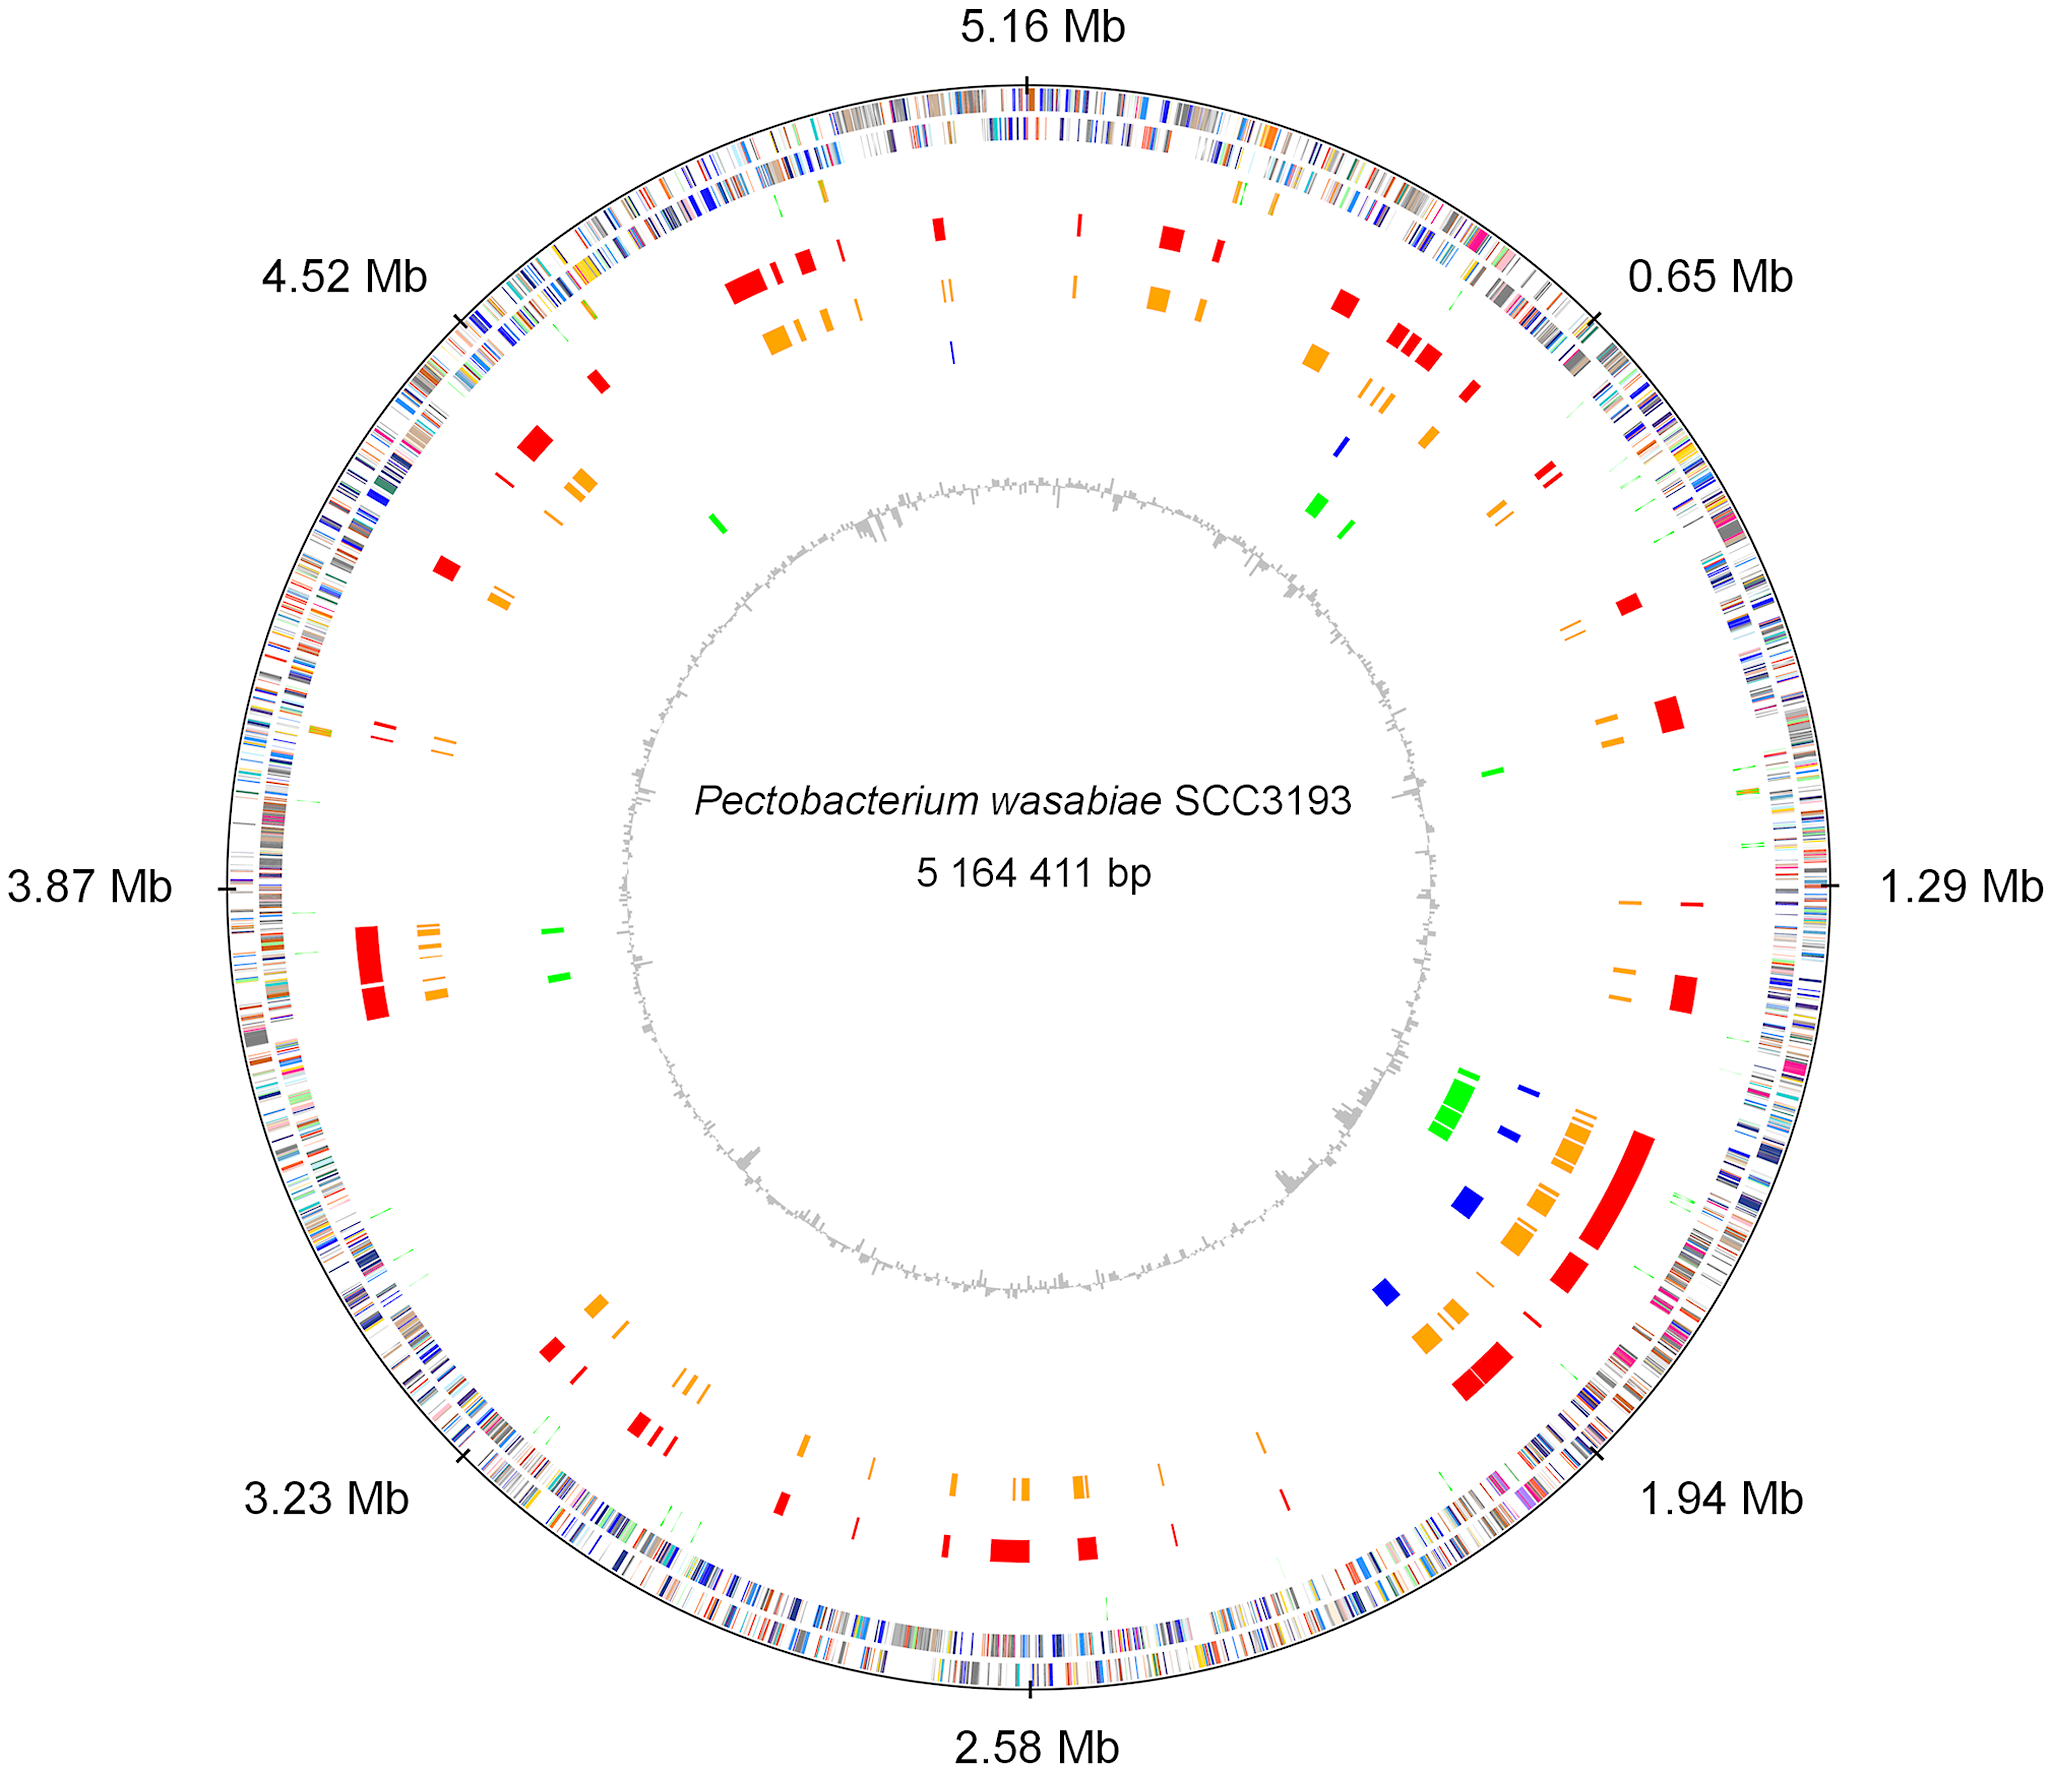 Circular representation of the chromosome of <i>Pectobacterium wasabiae</i> SCC3193.